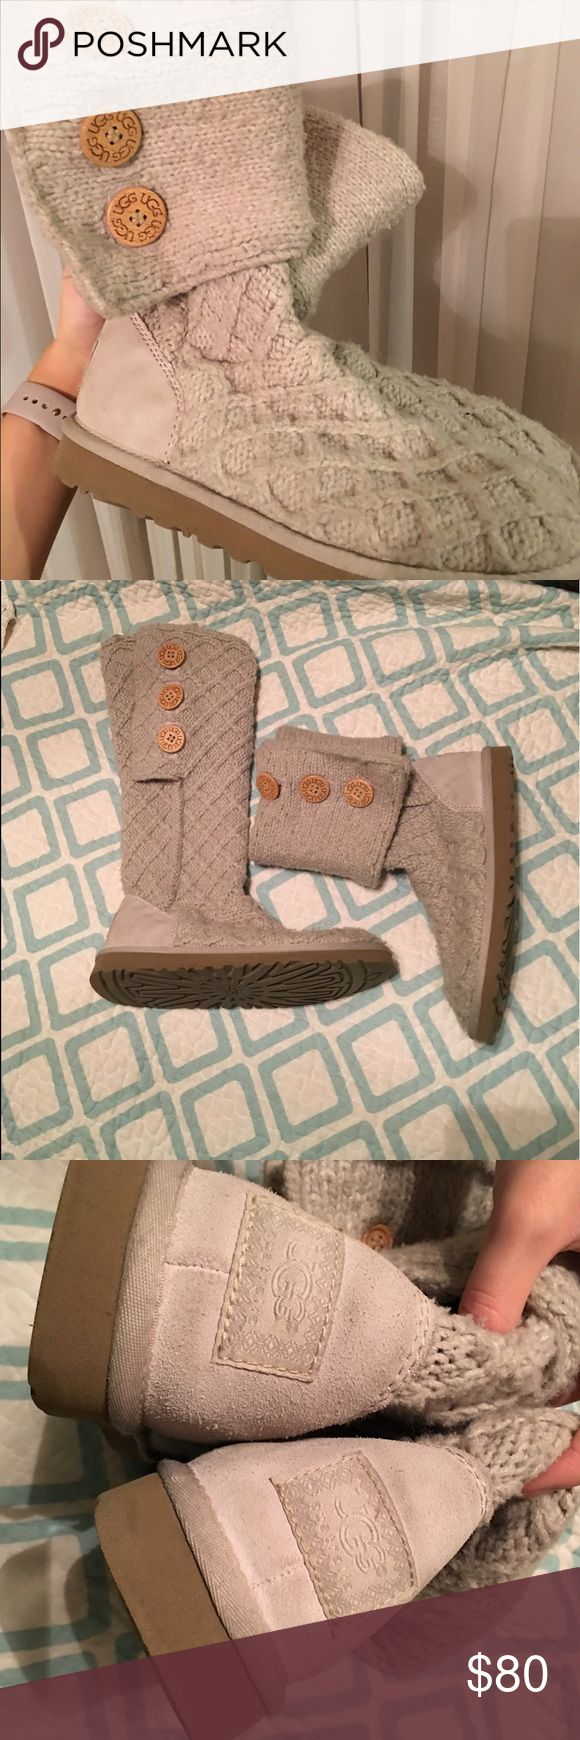 UGG Classic Cardy Winter Knit Boots These UGG Classic Cardy Winter Knit Boots can be worn long or short. The cloth and fur inside are in amazing condition. These were hardly worn! UGG Shoes Winter & Rain Boots